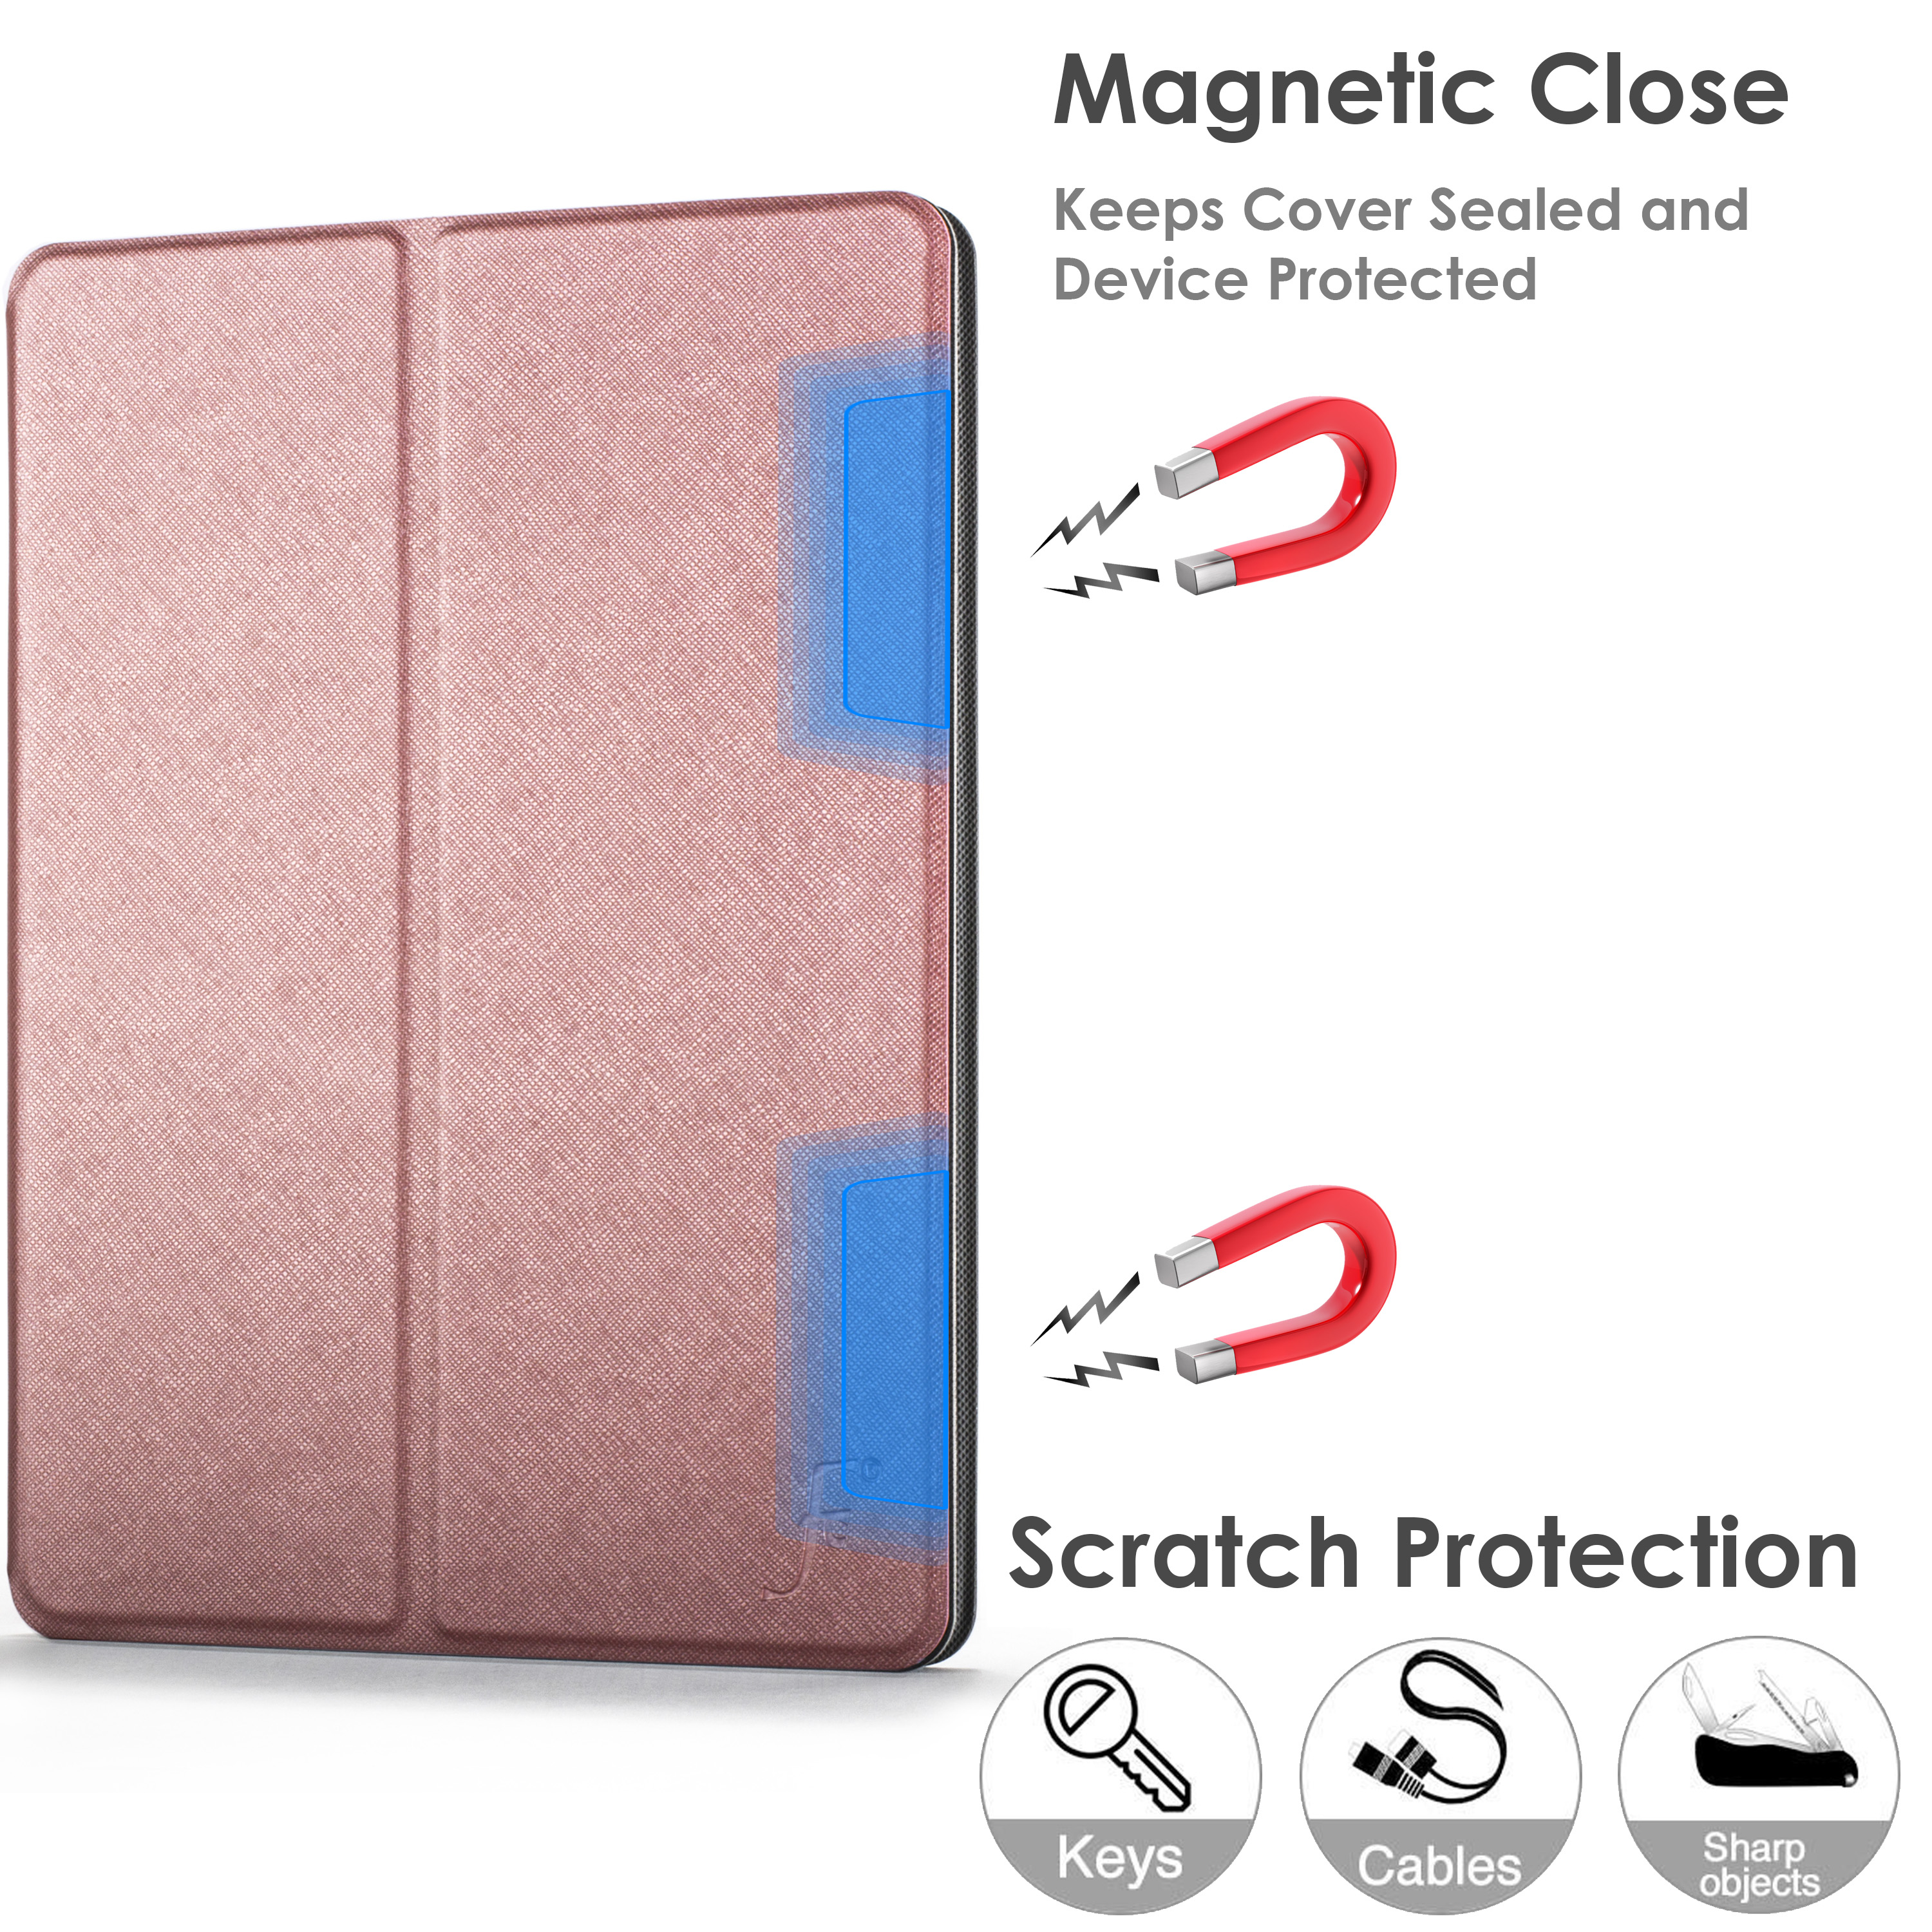 miniature 79 - Samsung Galaxy Tab A 10.1 2019 Étui Magnétique Protection & Support + Stylet